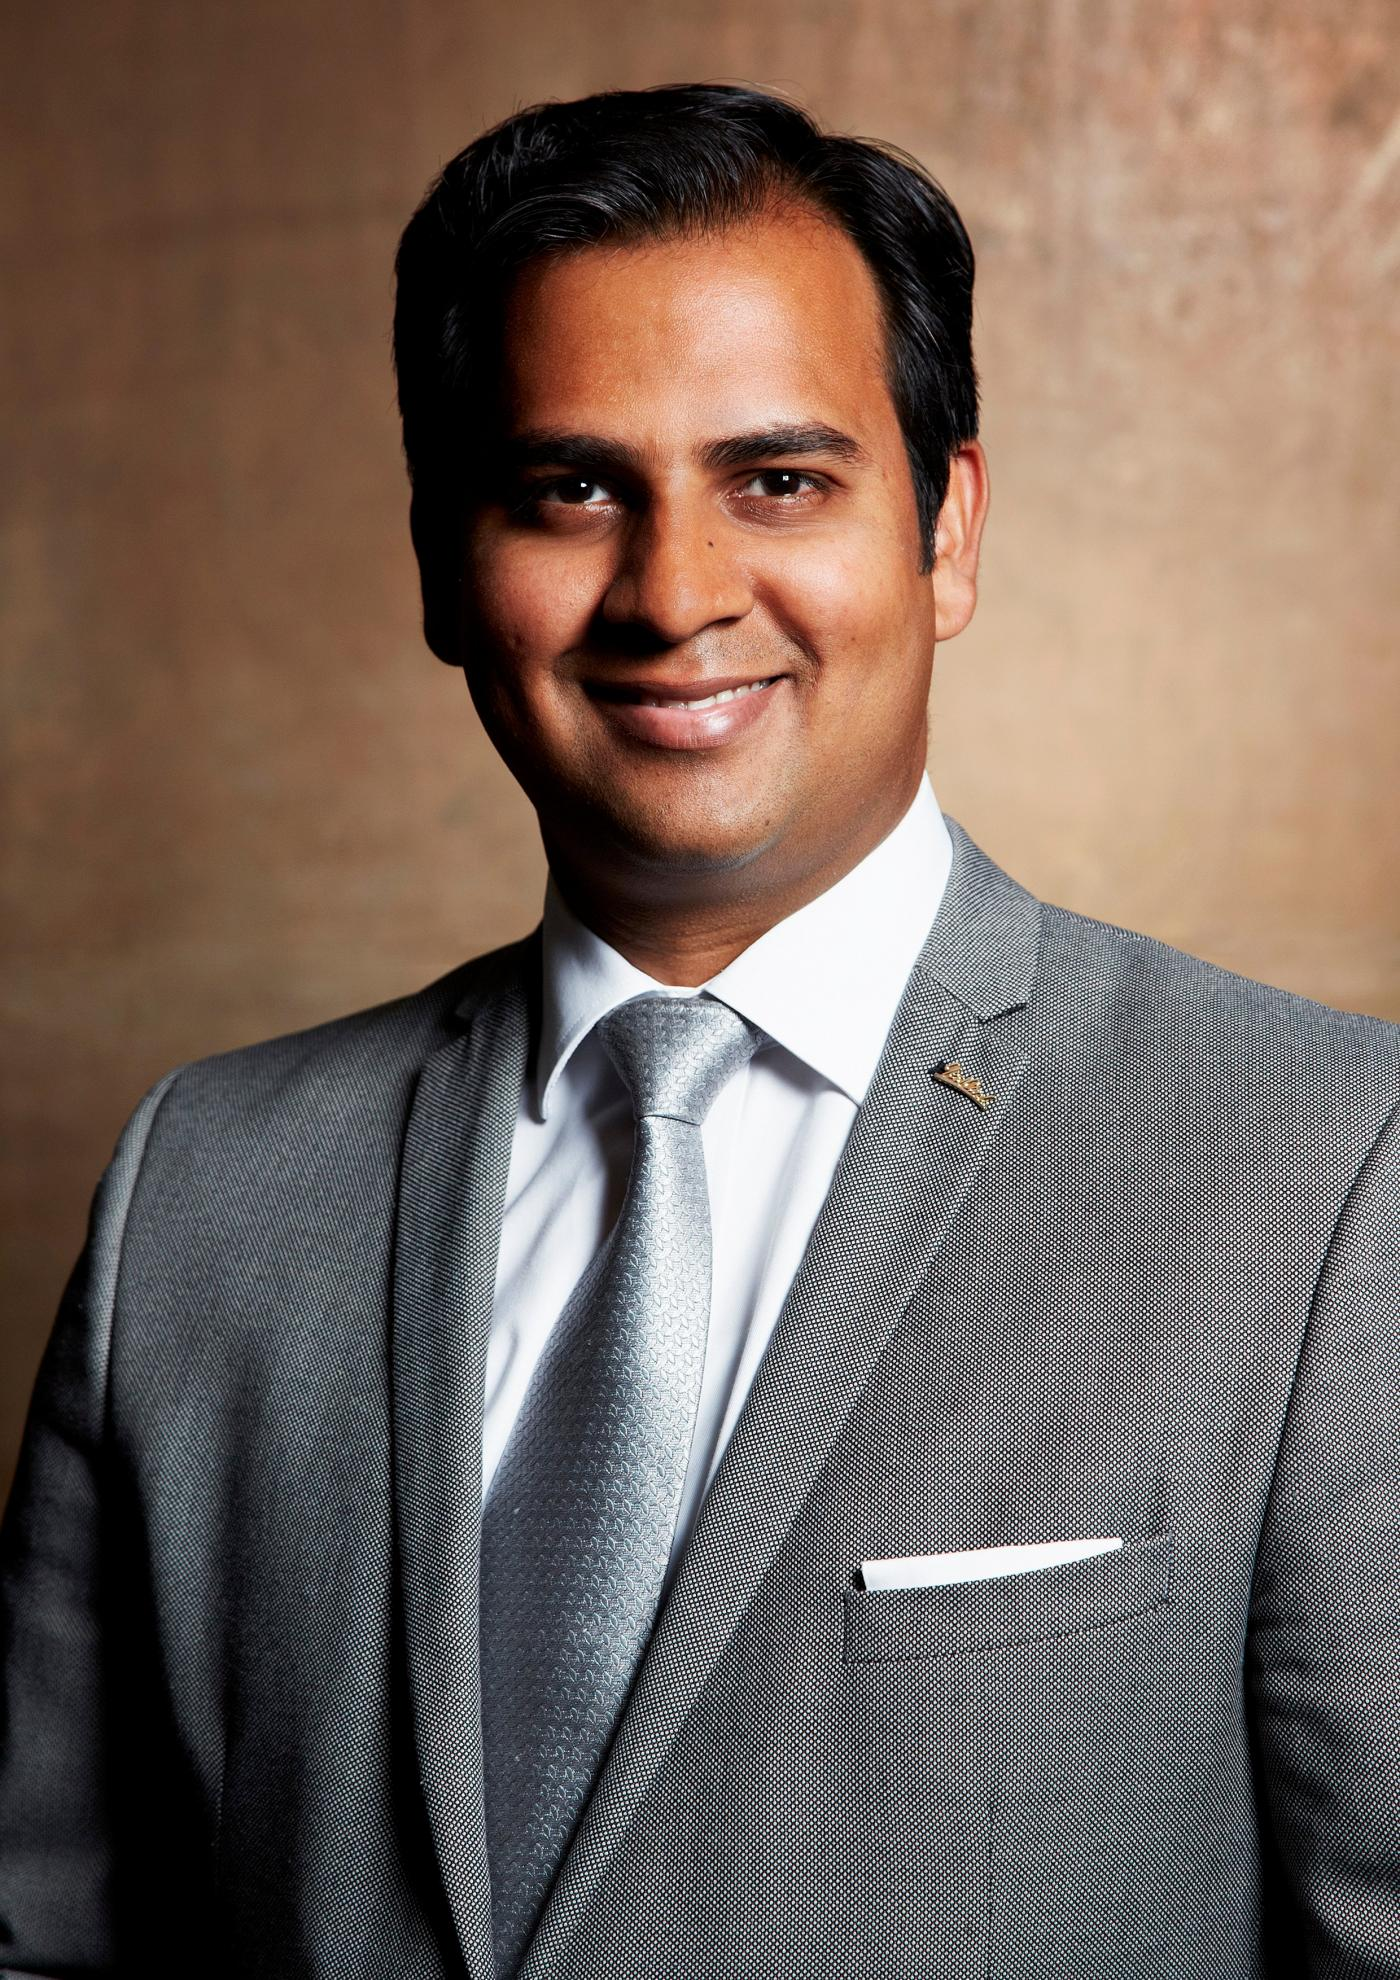 kumar mishra has been appointed general manager at